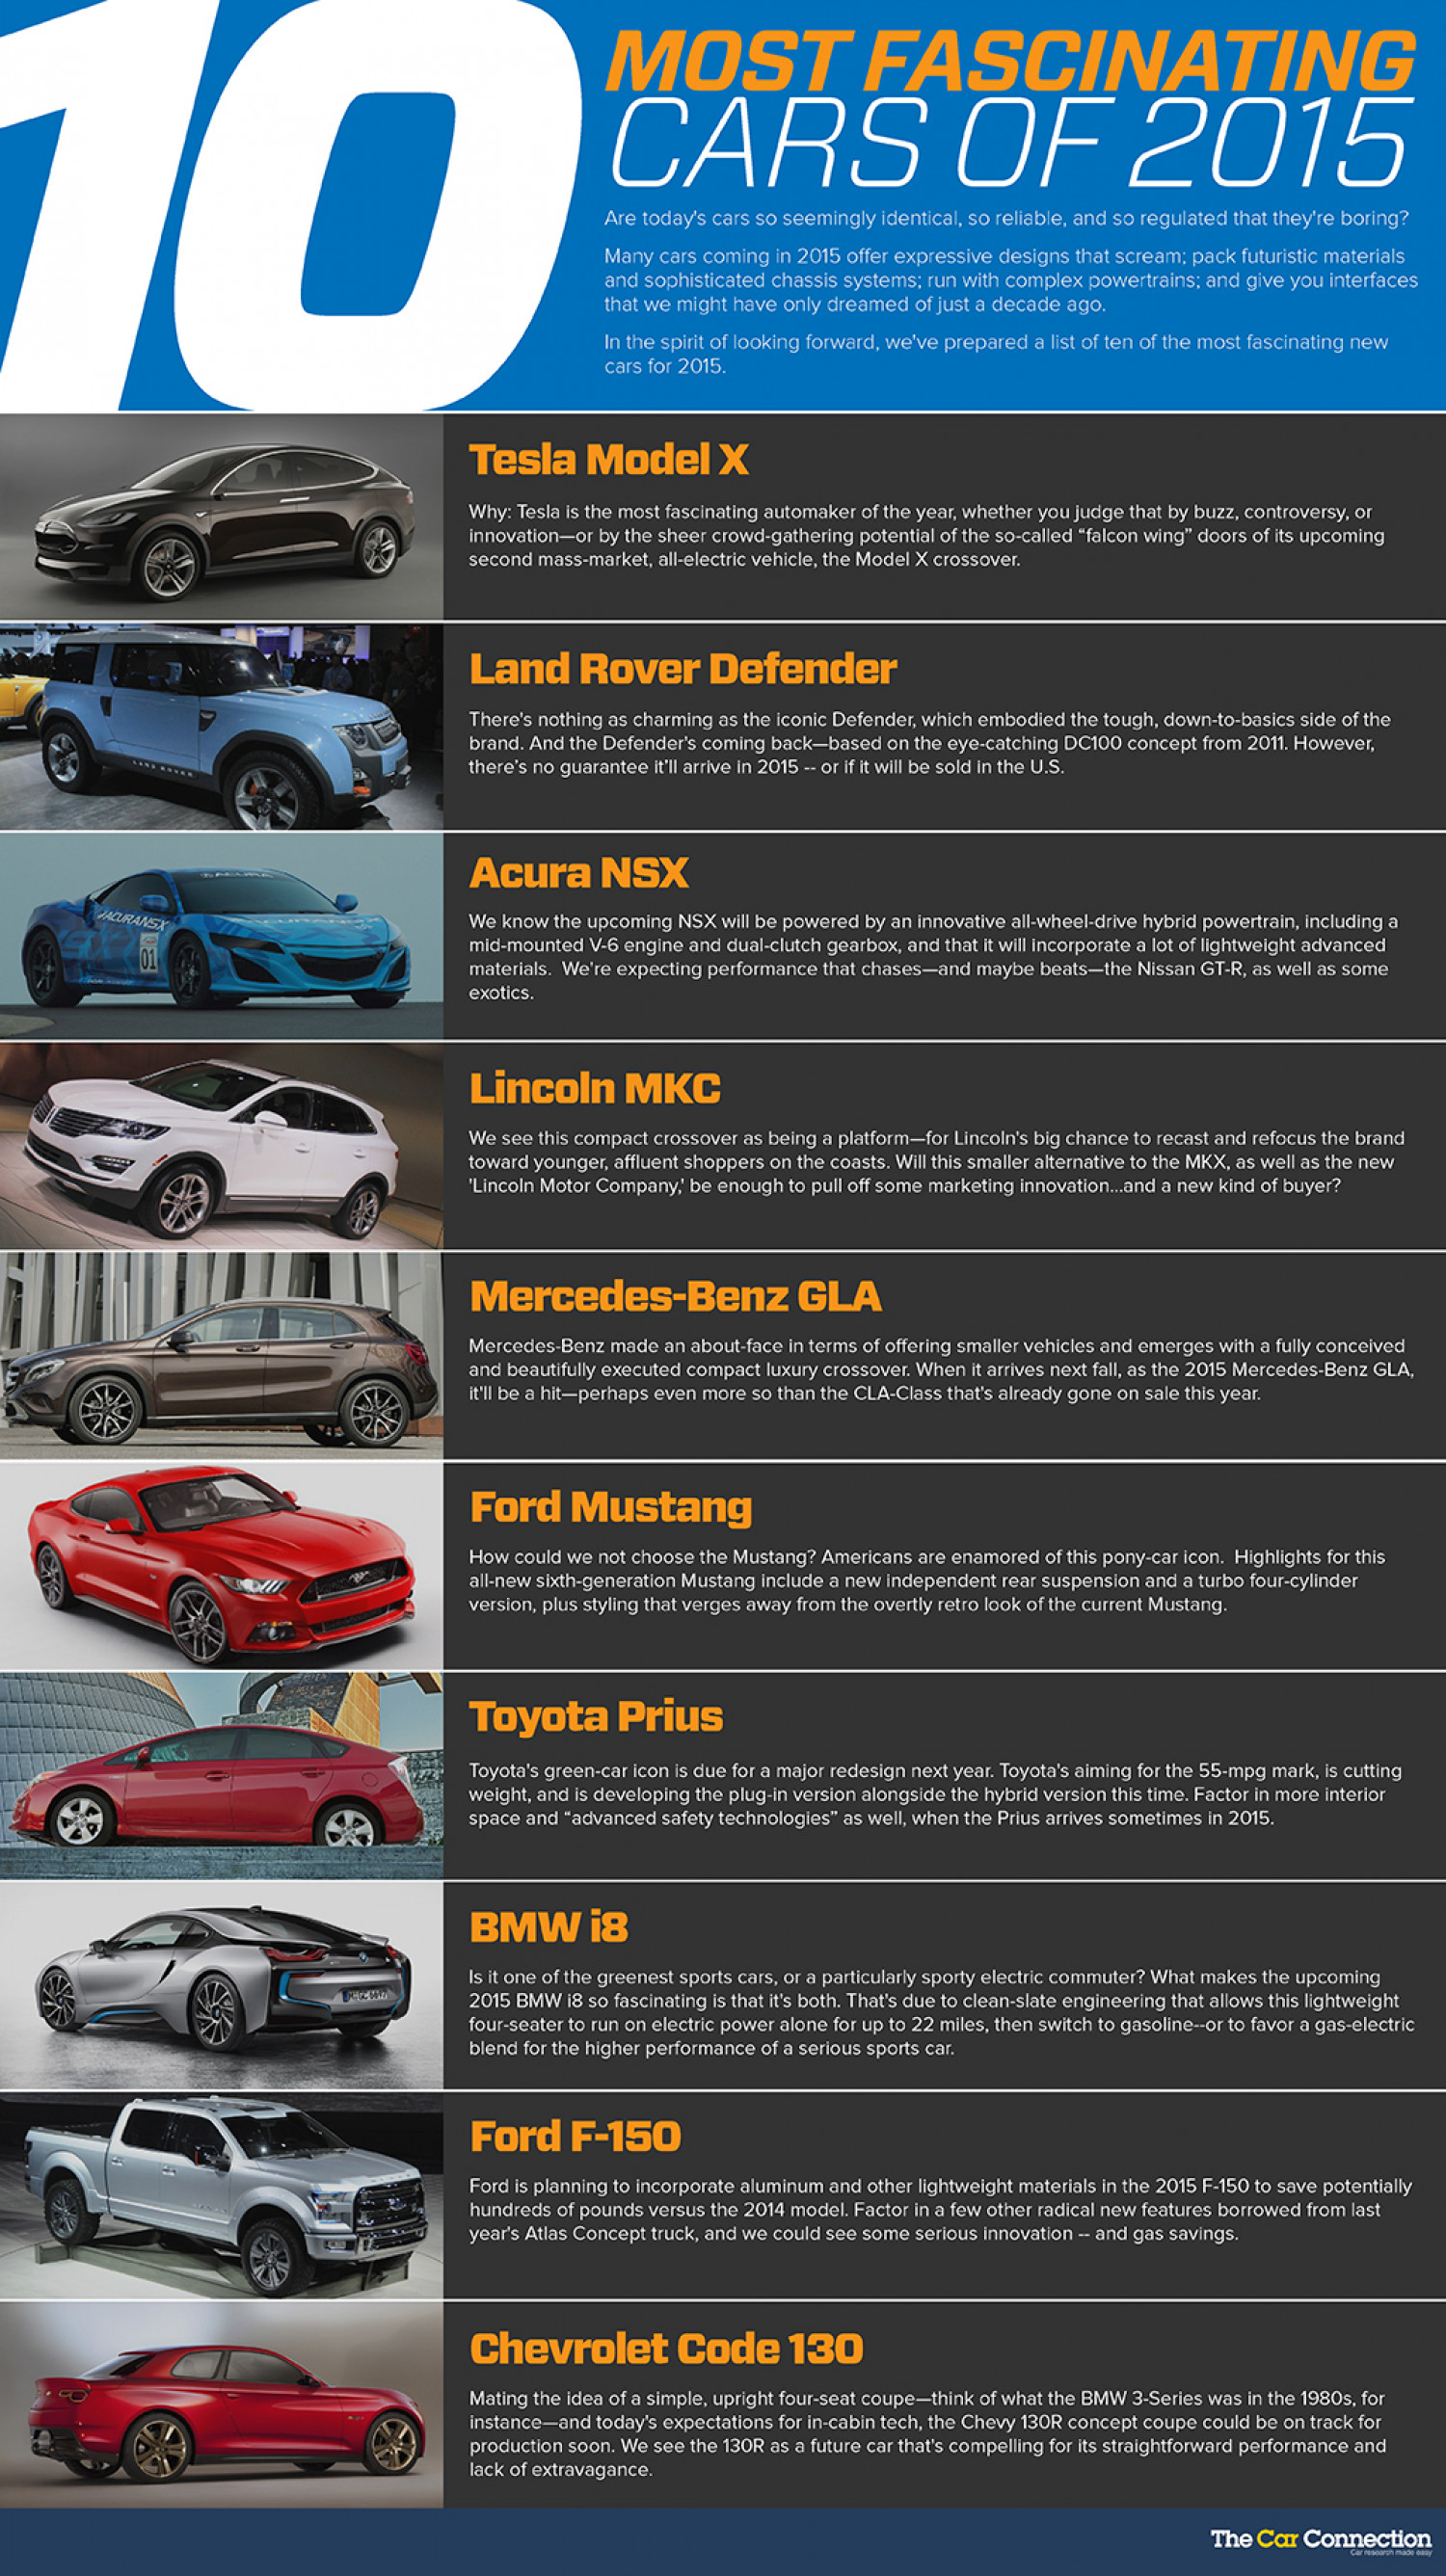 The 10 Most Fascinating Cars Of 2015 Infographic